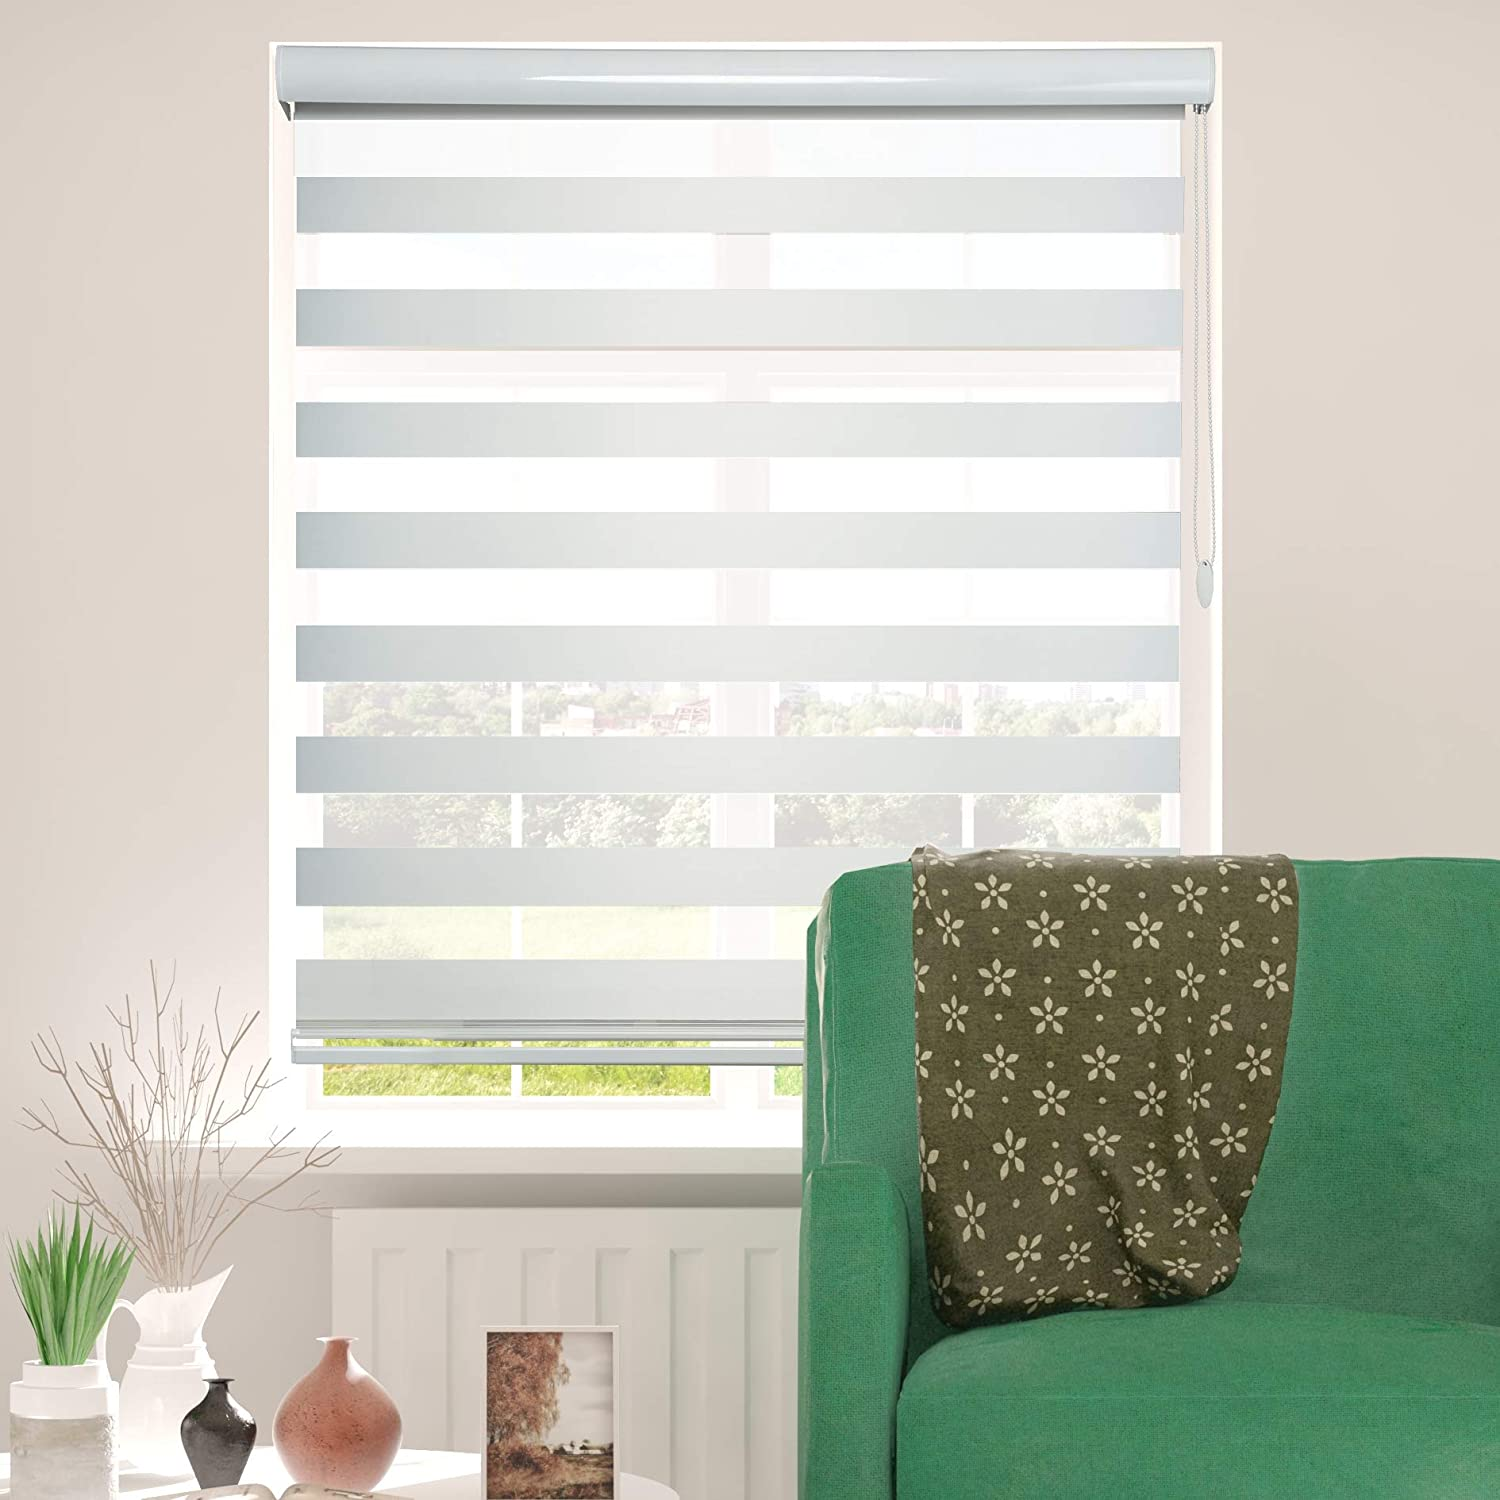 ShadesU Zebra Dual Layer Roller Sheer Shades Blinds Light Filtering Window Treatments Privacy Light Control for Day and Night (Maxium Height 72inch) (White Color) (Width 34inch)